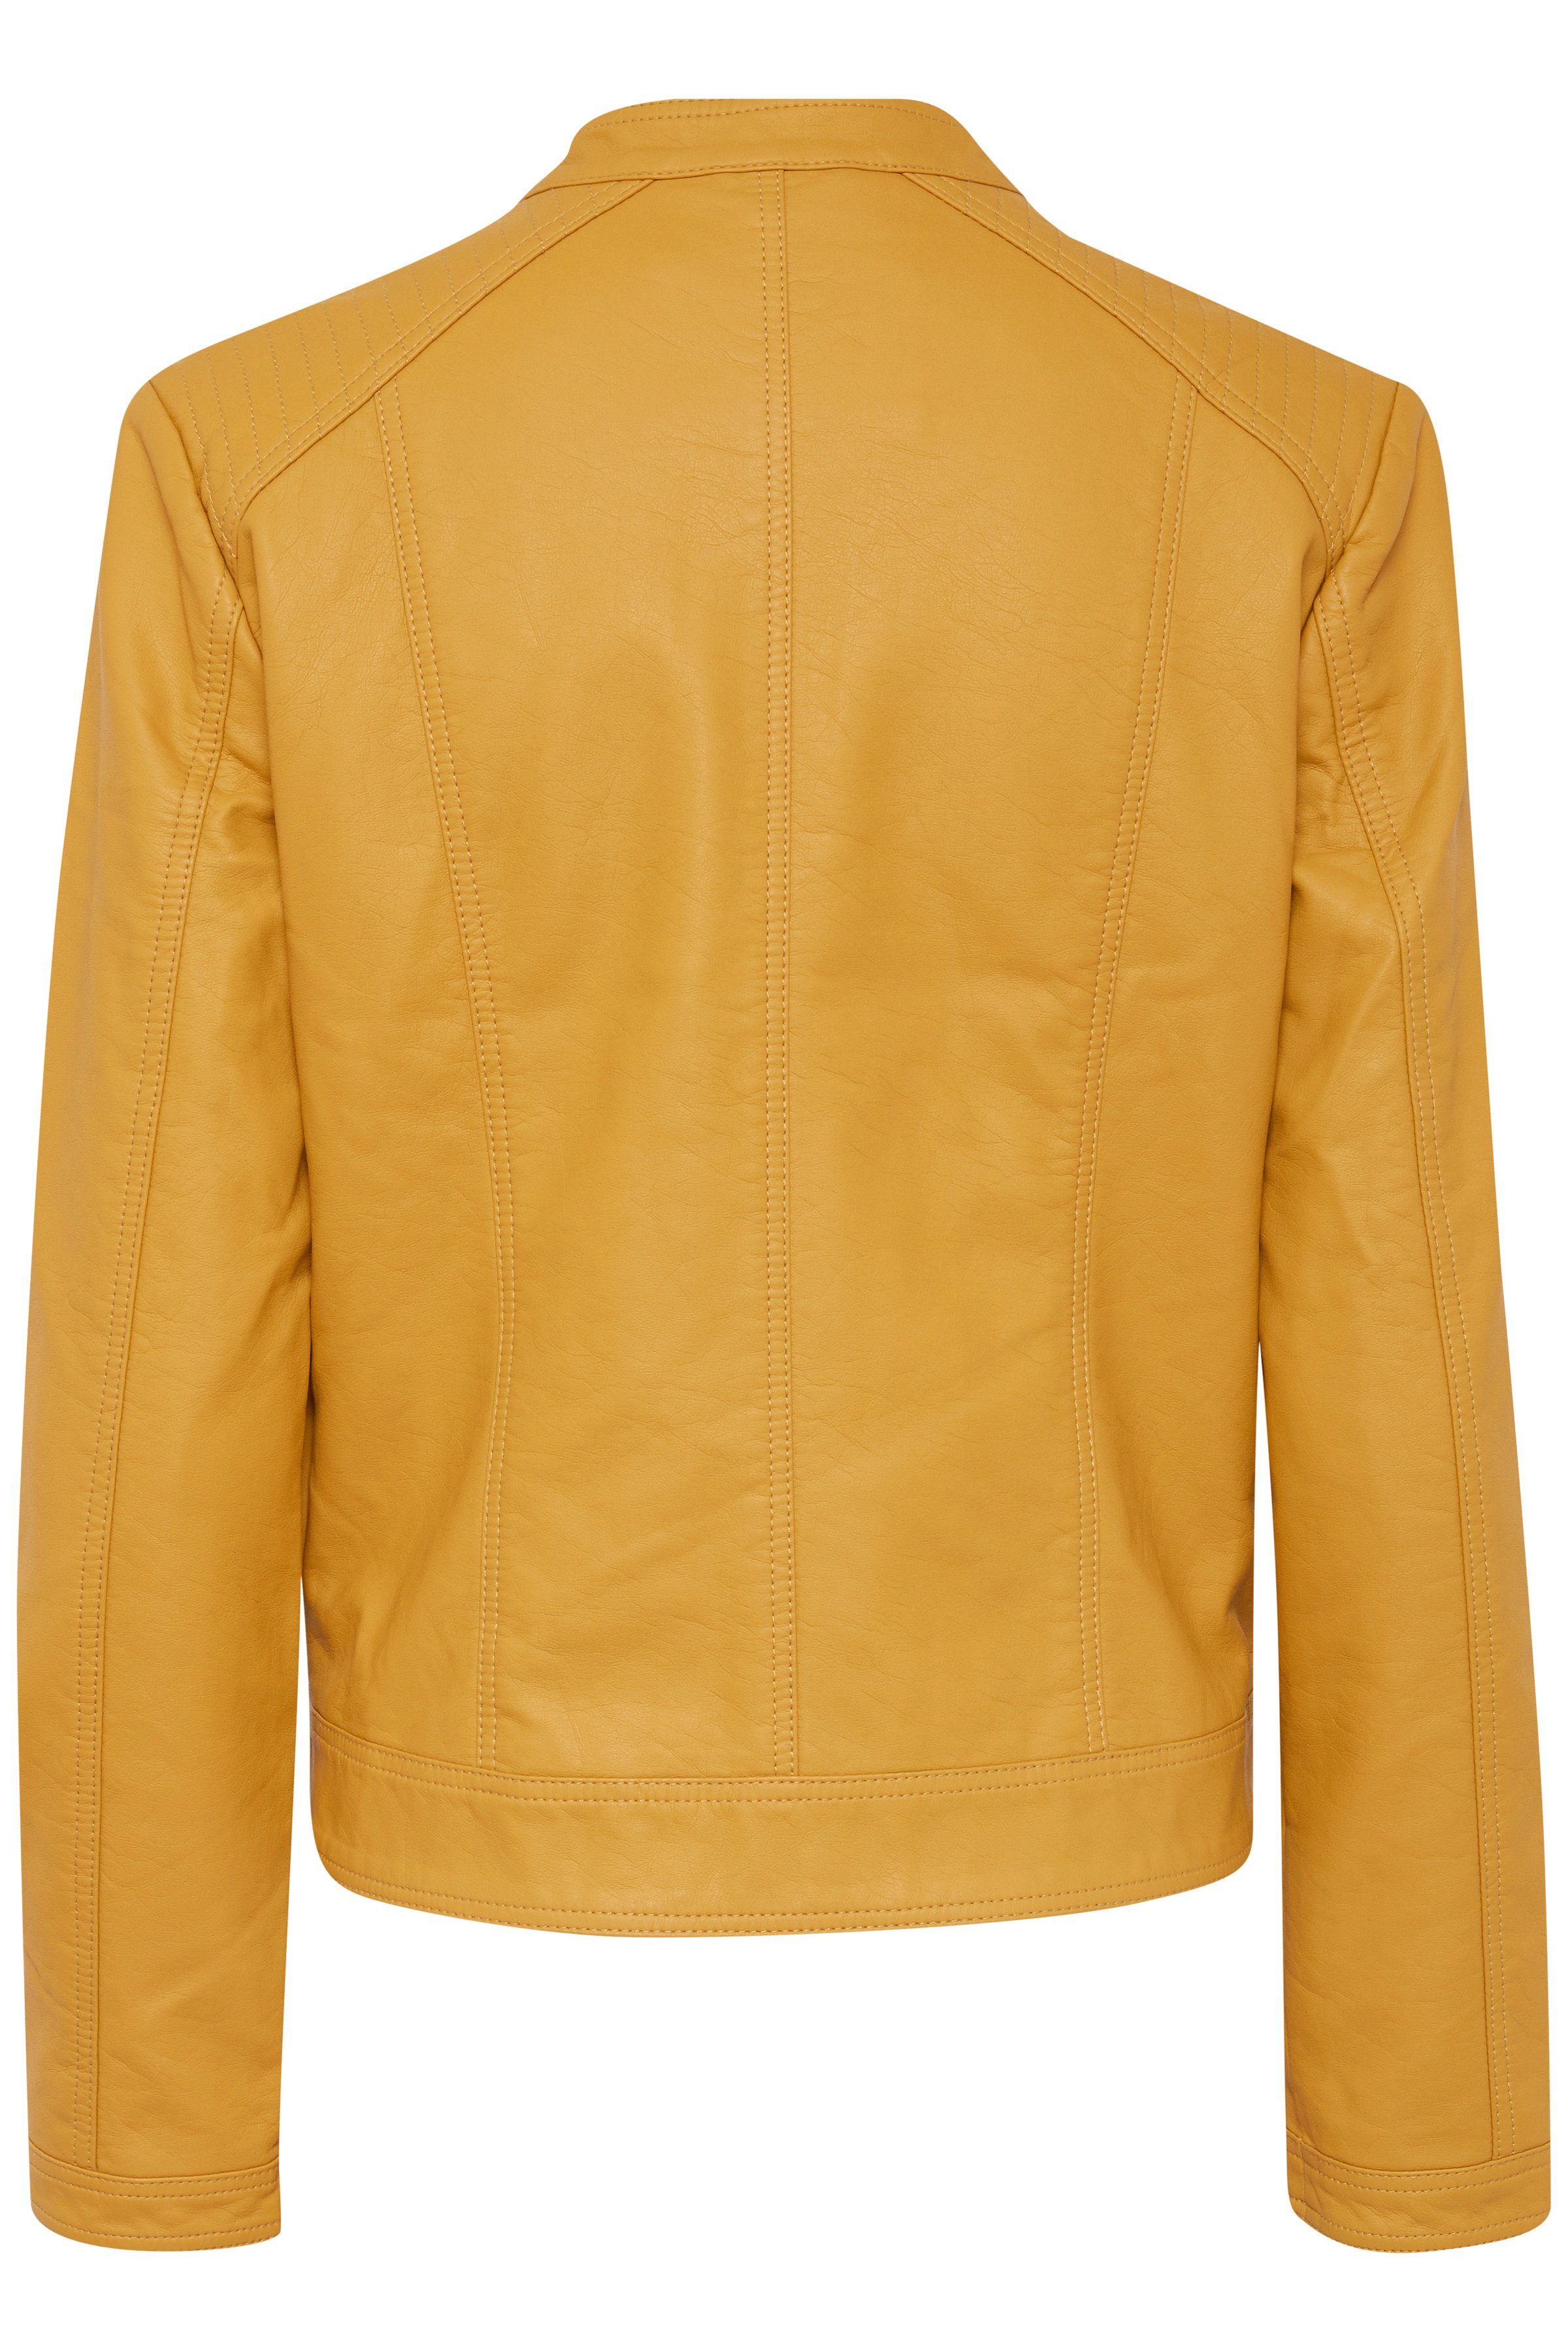 Ochre Yellow Jacket from b.young – Buy Ochre Yellow Jacket from size 34-46 here